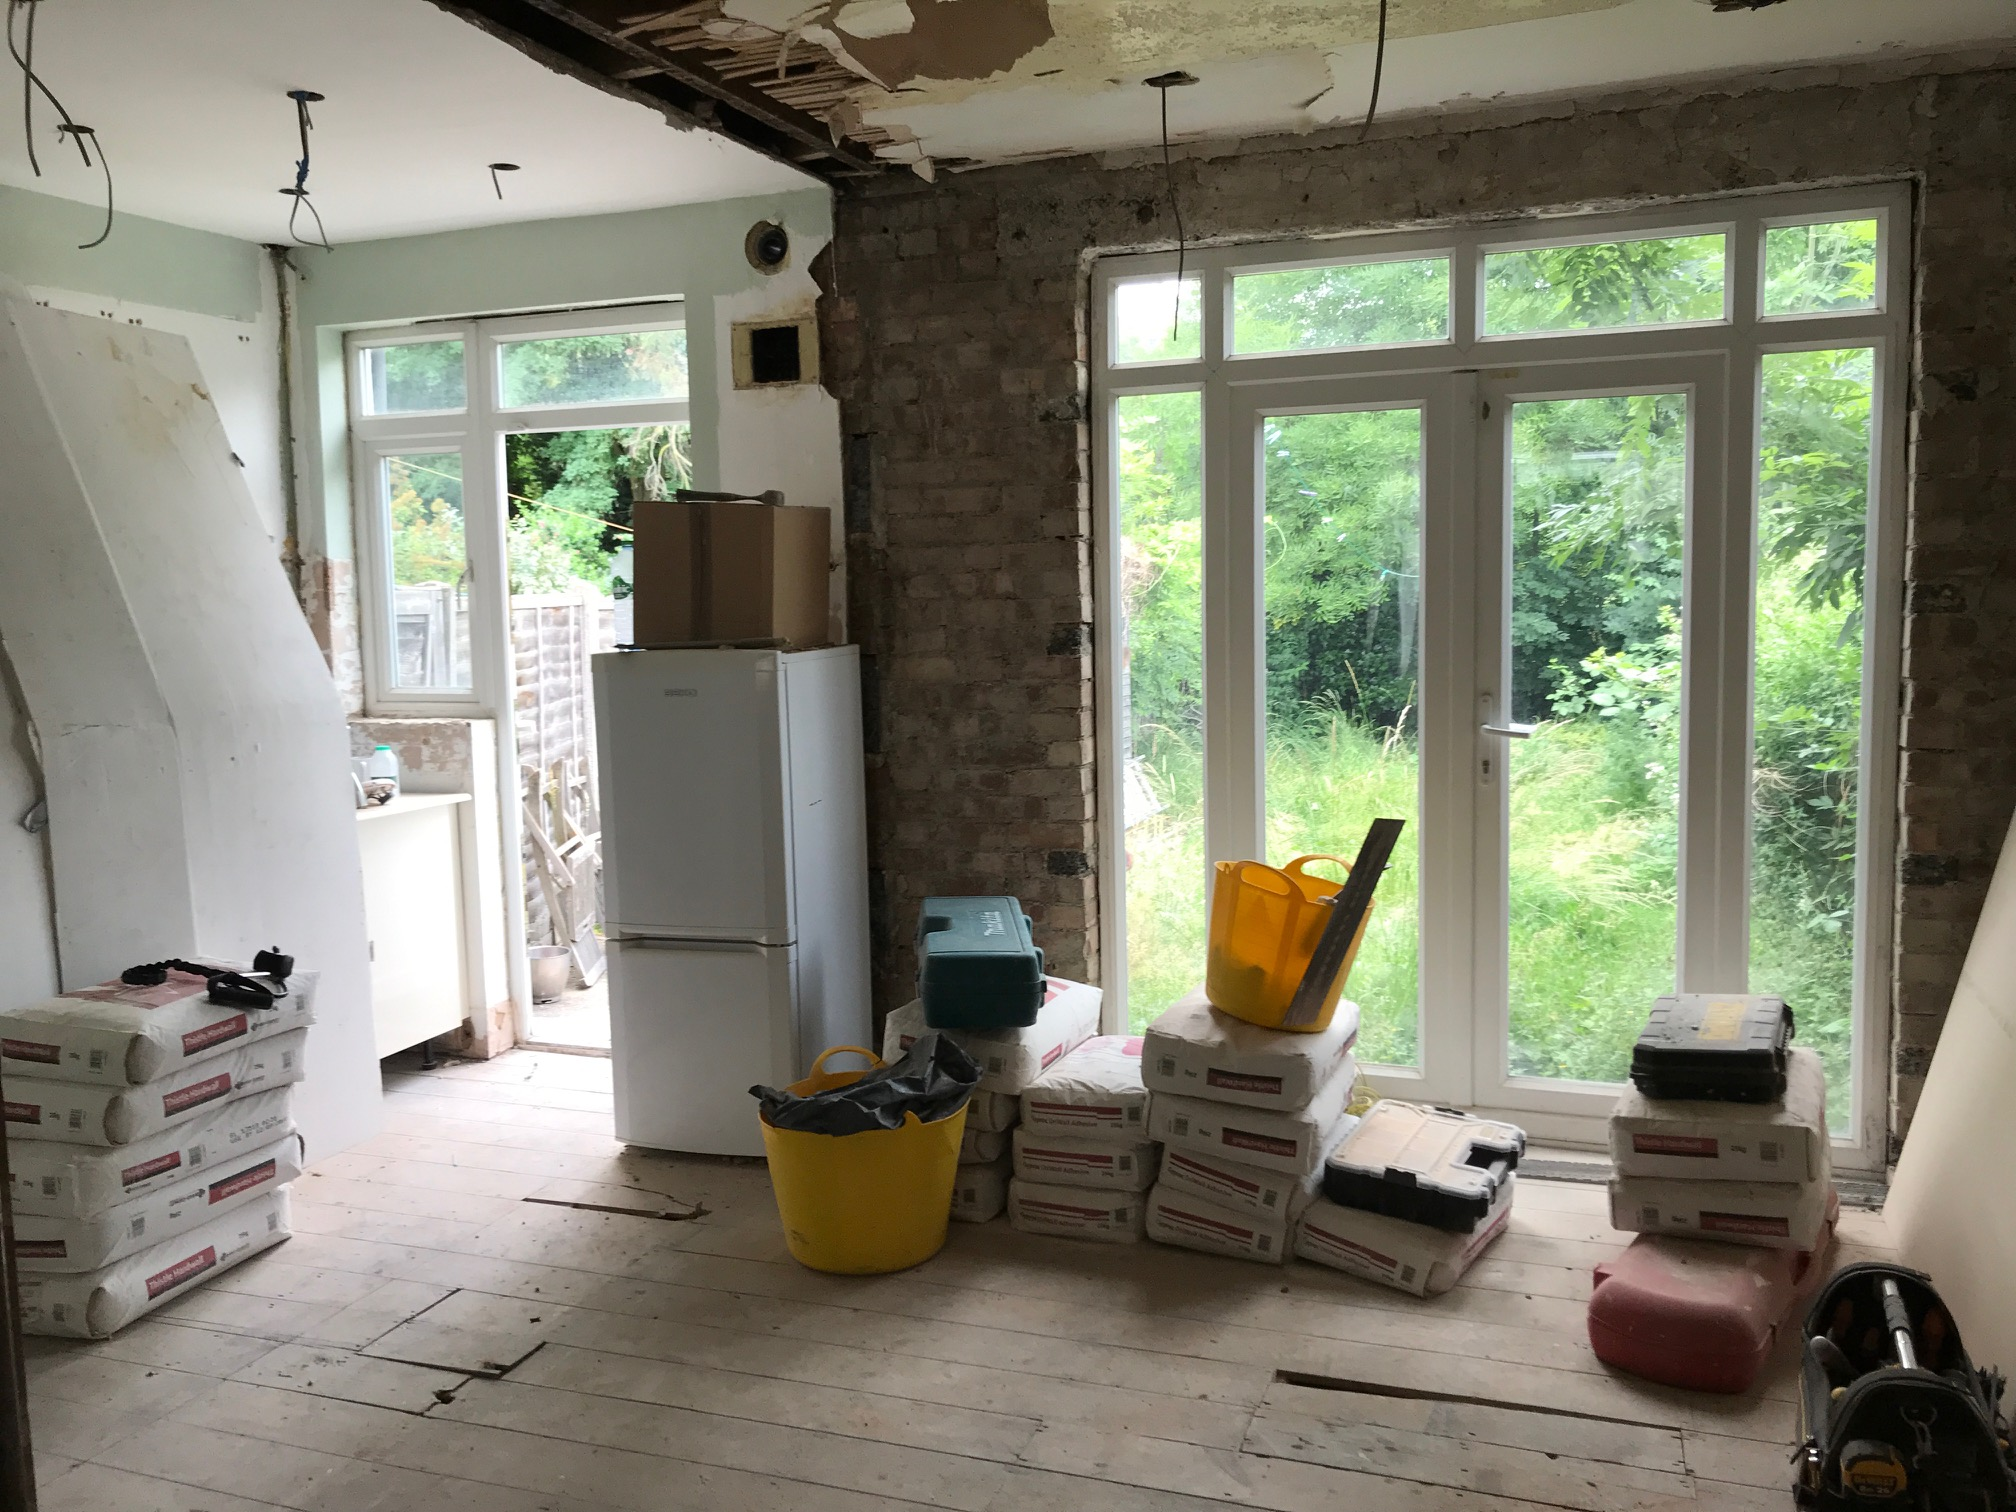 Week two: Our house renovations